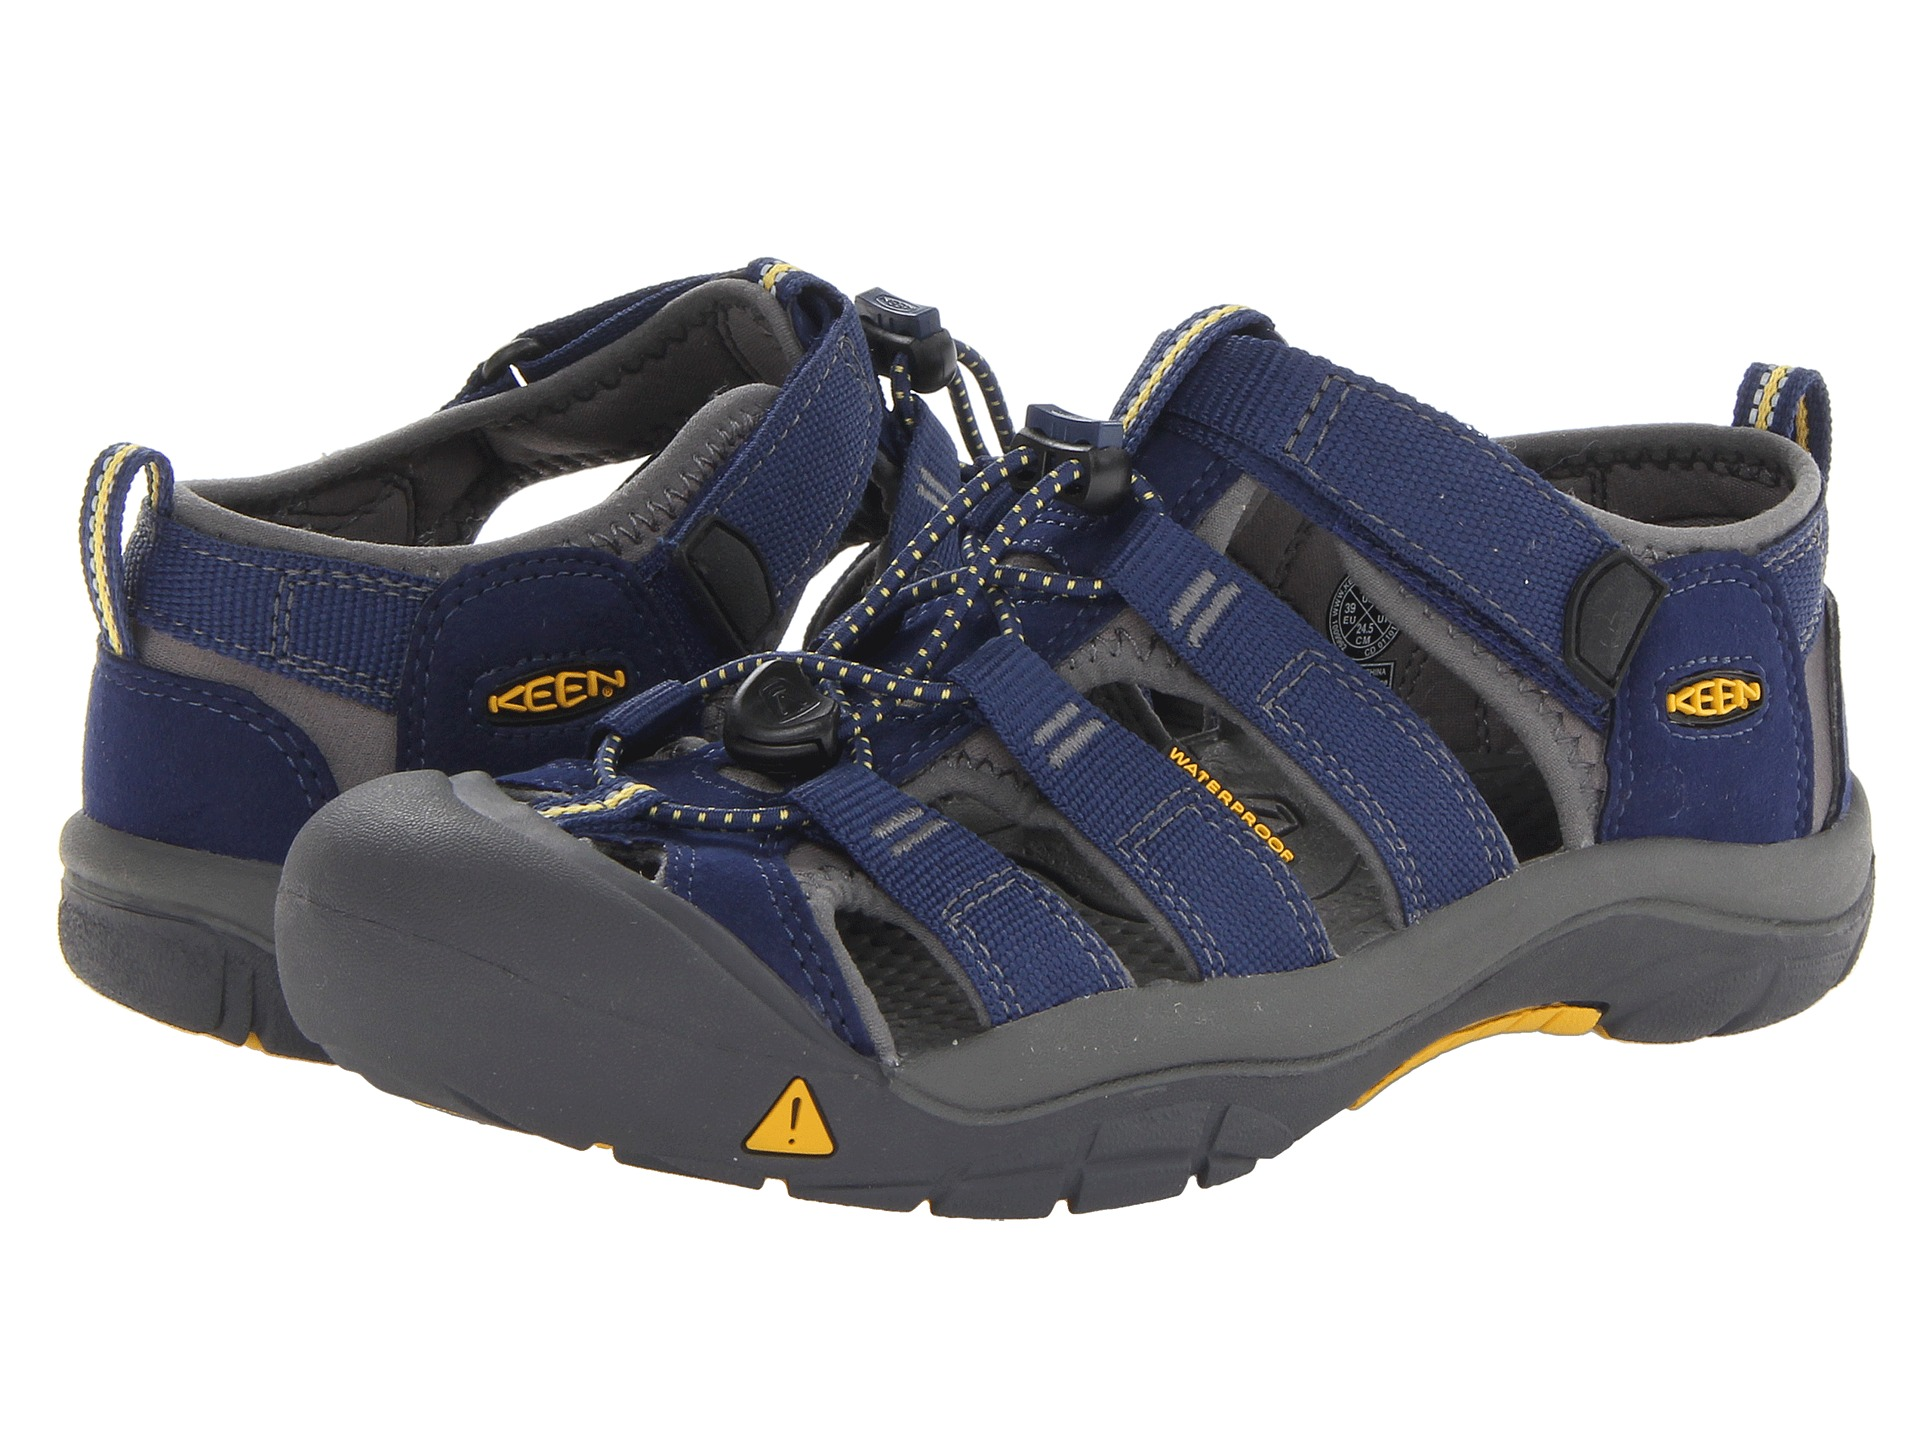 AdStride Rite Shoes - Boots - Sandals - Sneakers @ One Place - Buy Online NowStride Rite Kids Shoes in Canada.